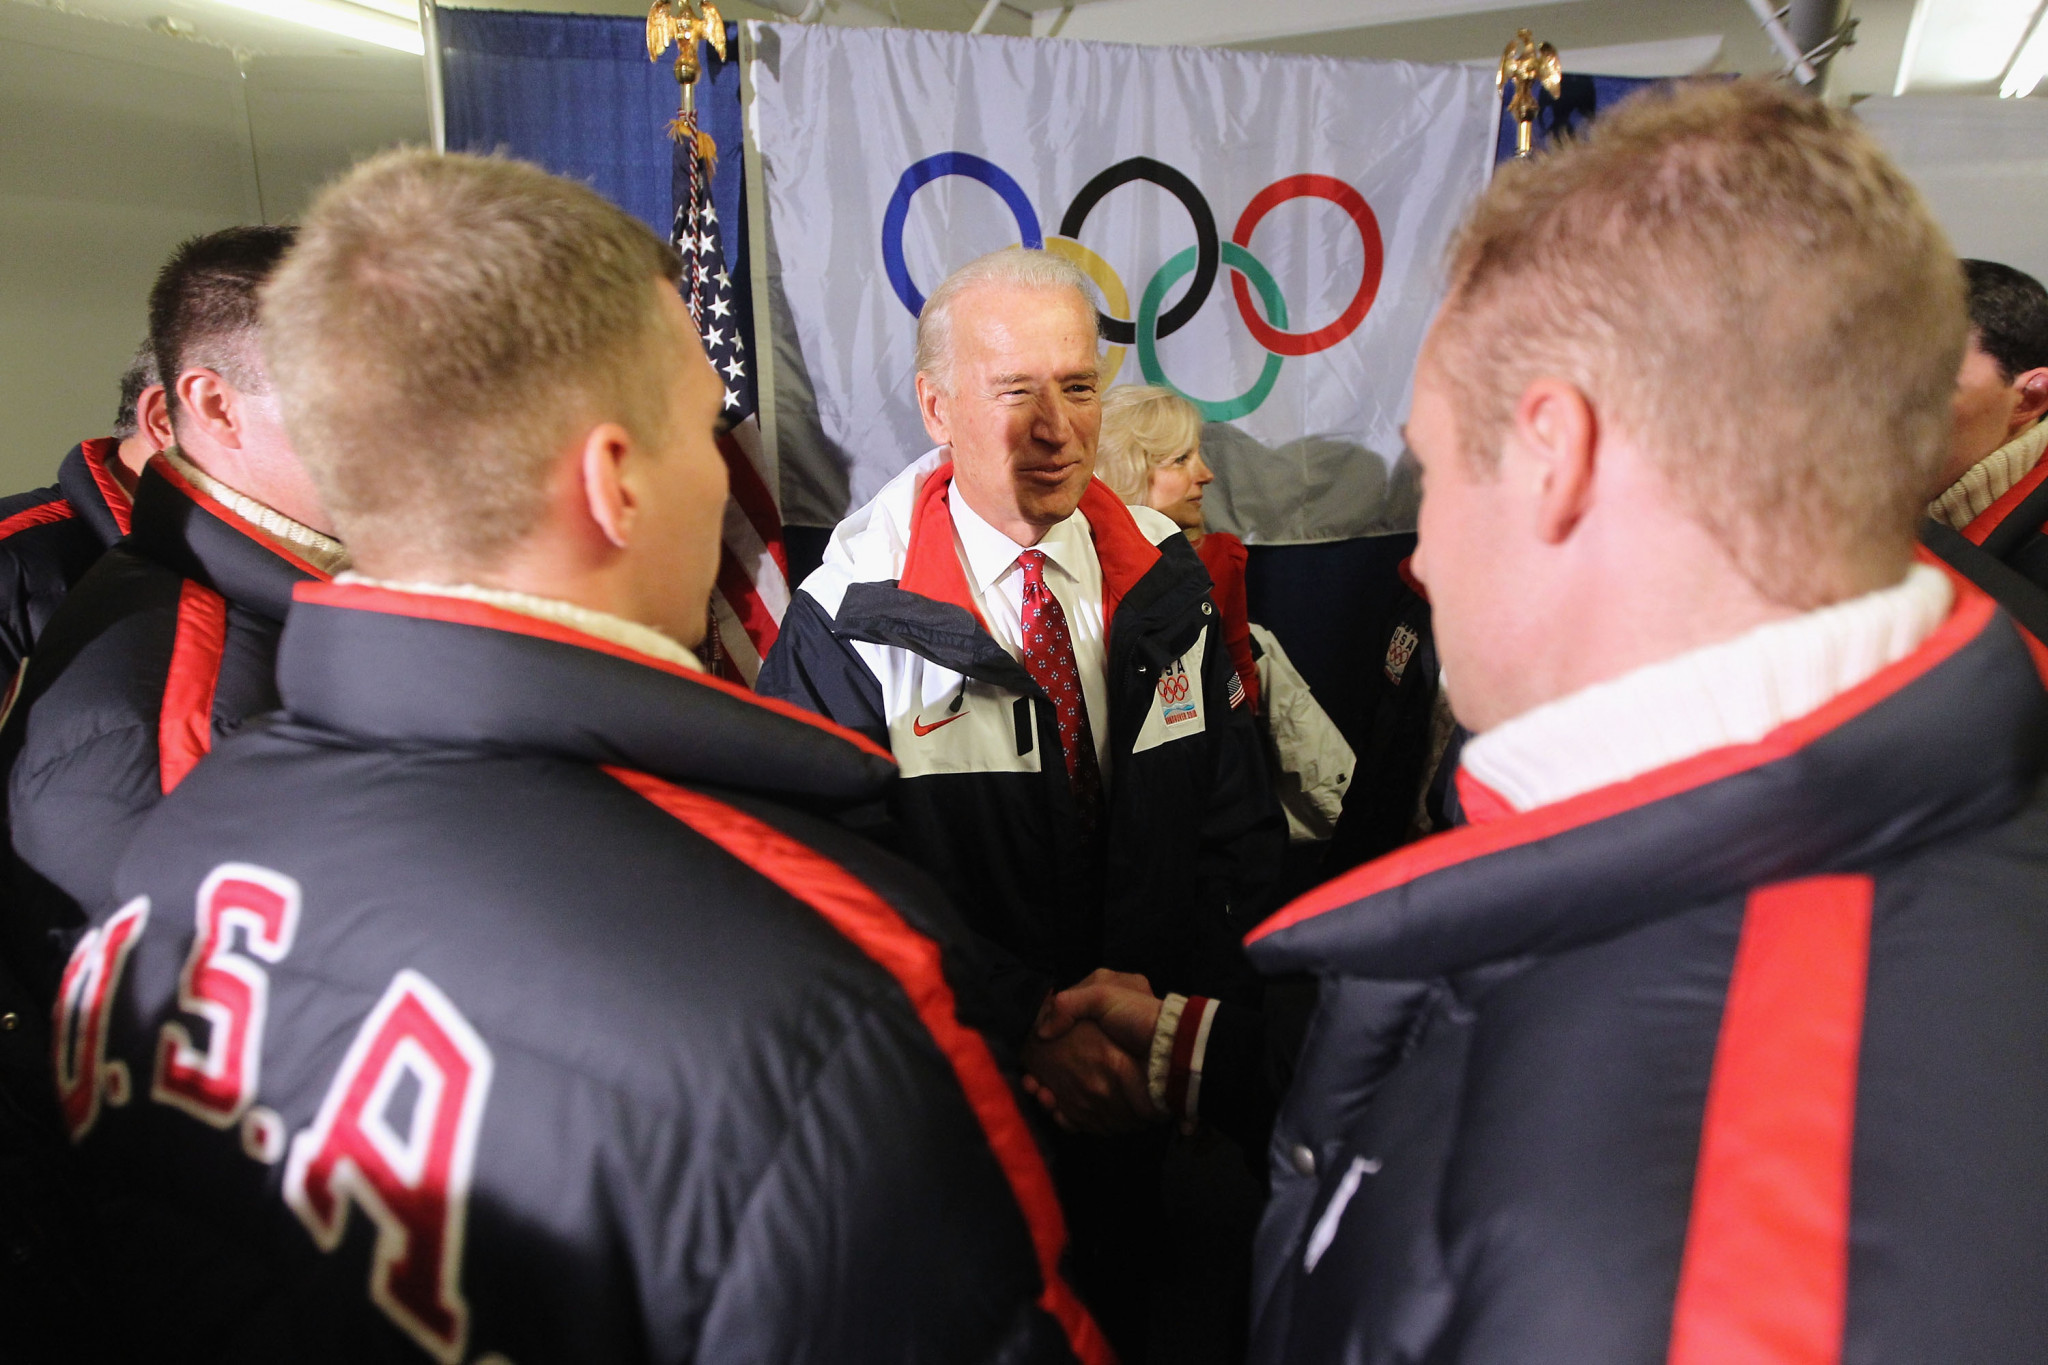 Joe Biden attended part of the Vancouver 2010 Winter Olympics ©Getty Images